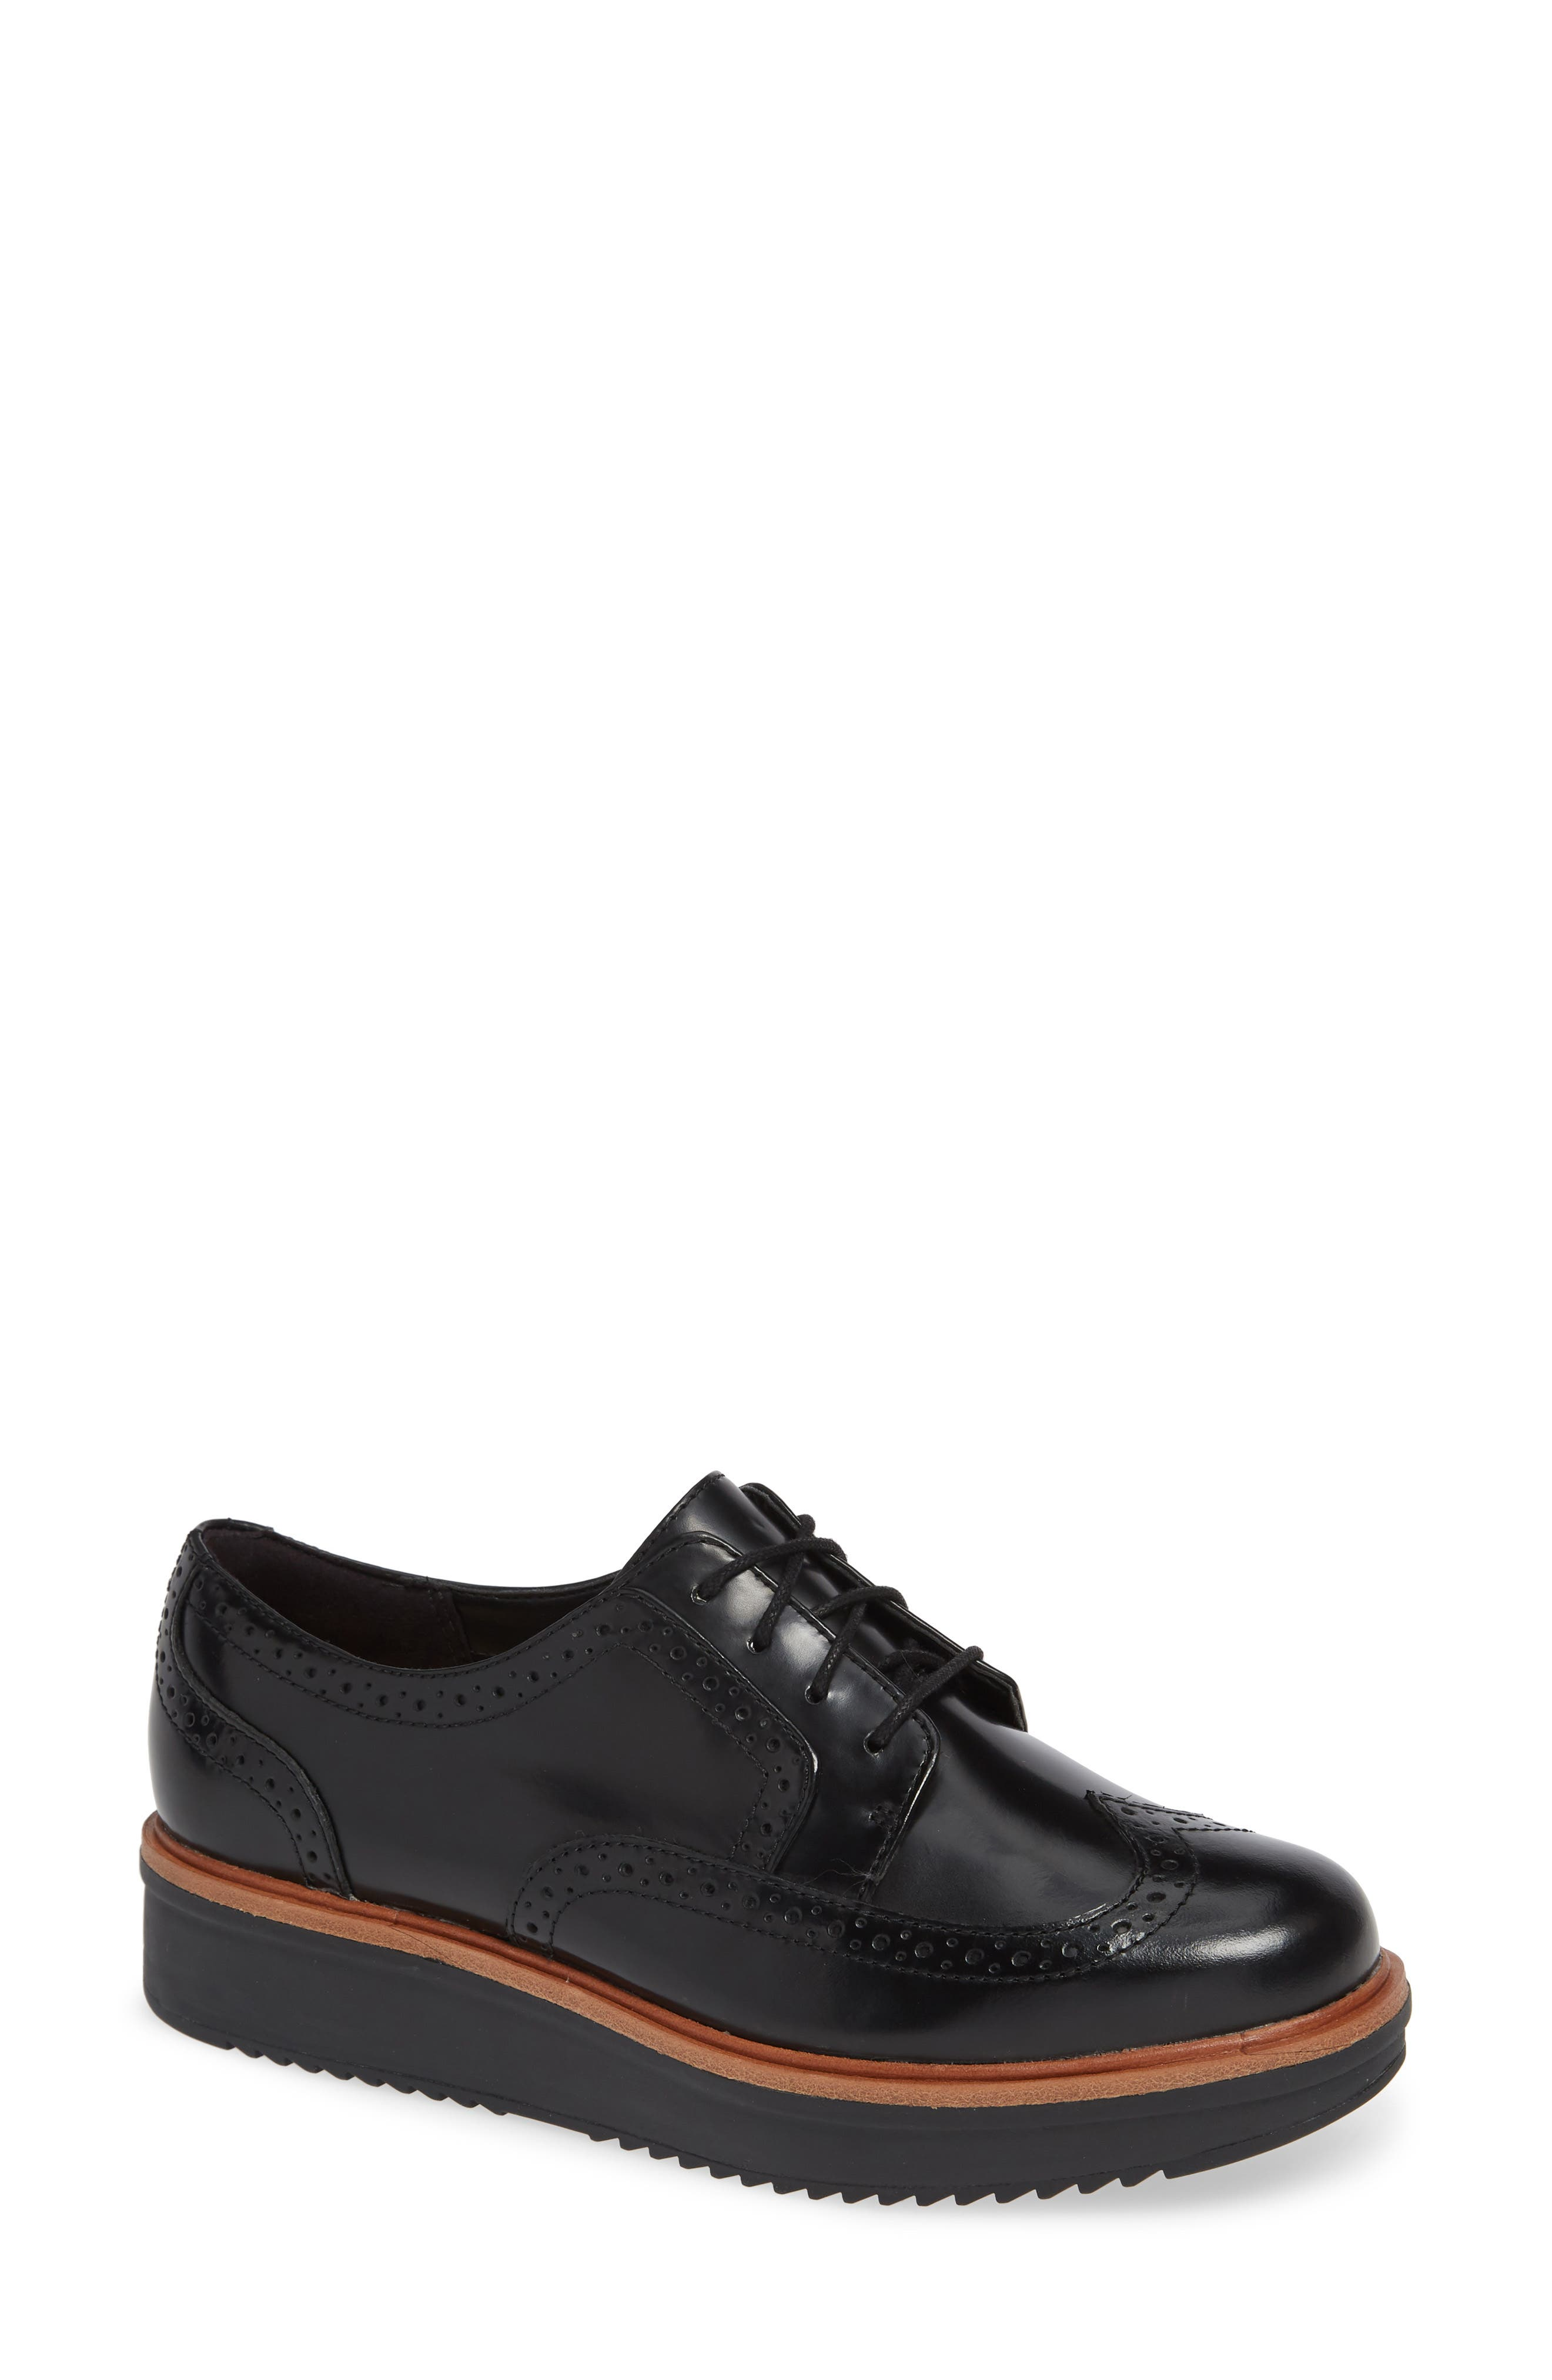 Teadale Maira Wingtip Derby,                             Main thumbnail 1, color,                             BLACK LEATHER